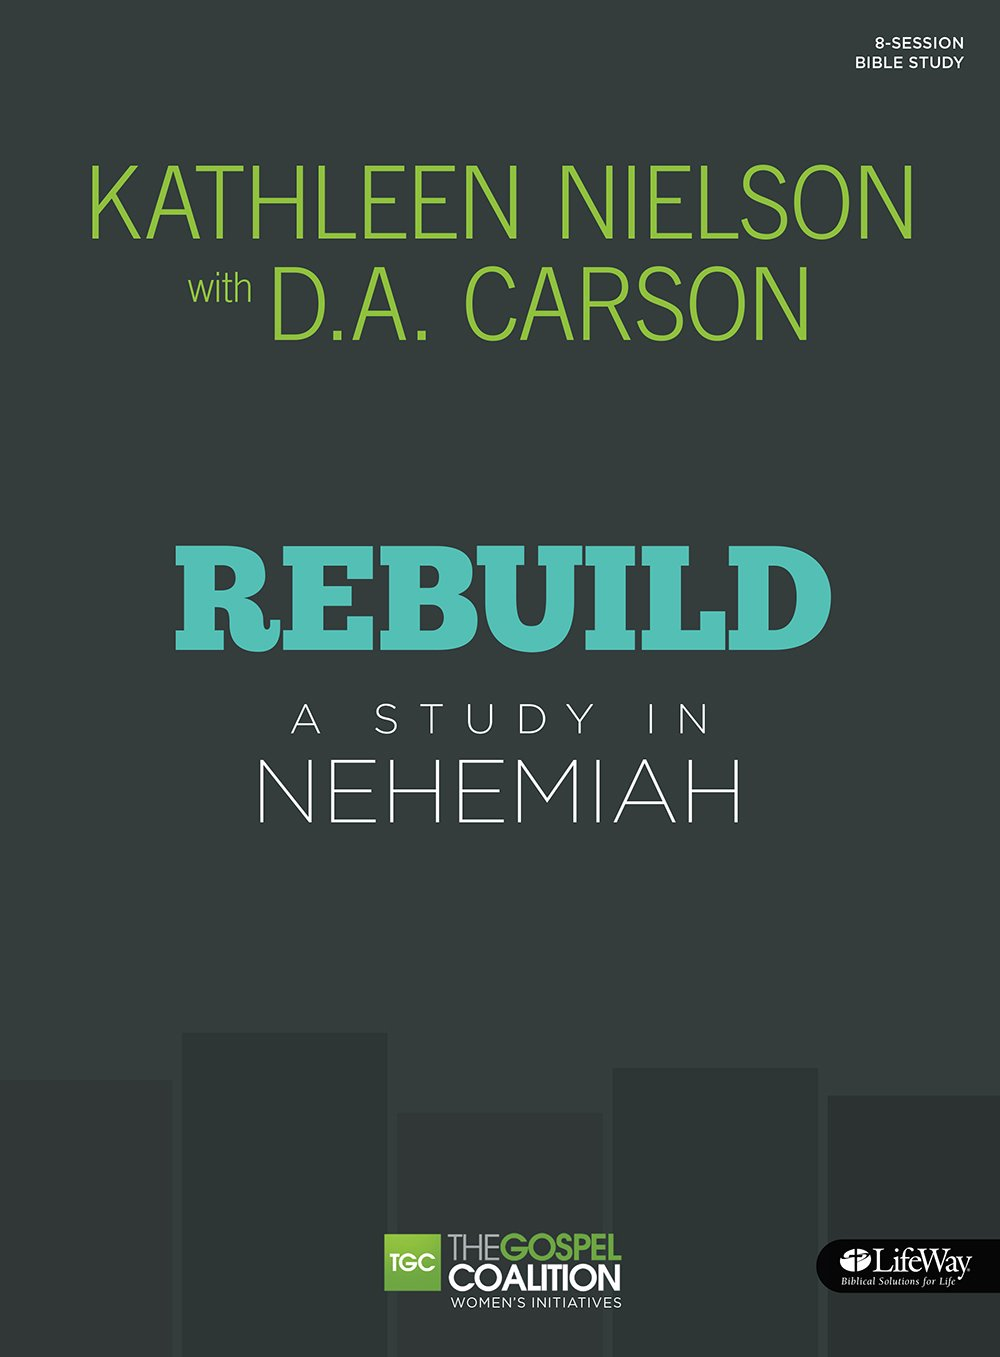 Rebuild - Bible Study Book: A Study in Nehemiah (The Gospel Coalition):  Kathleen B. Nielson: 9781430032236: Amazon.com: Books